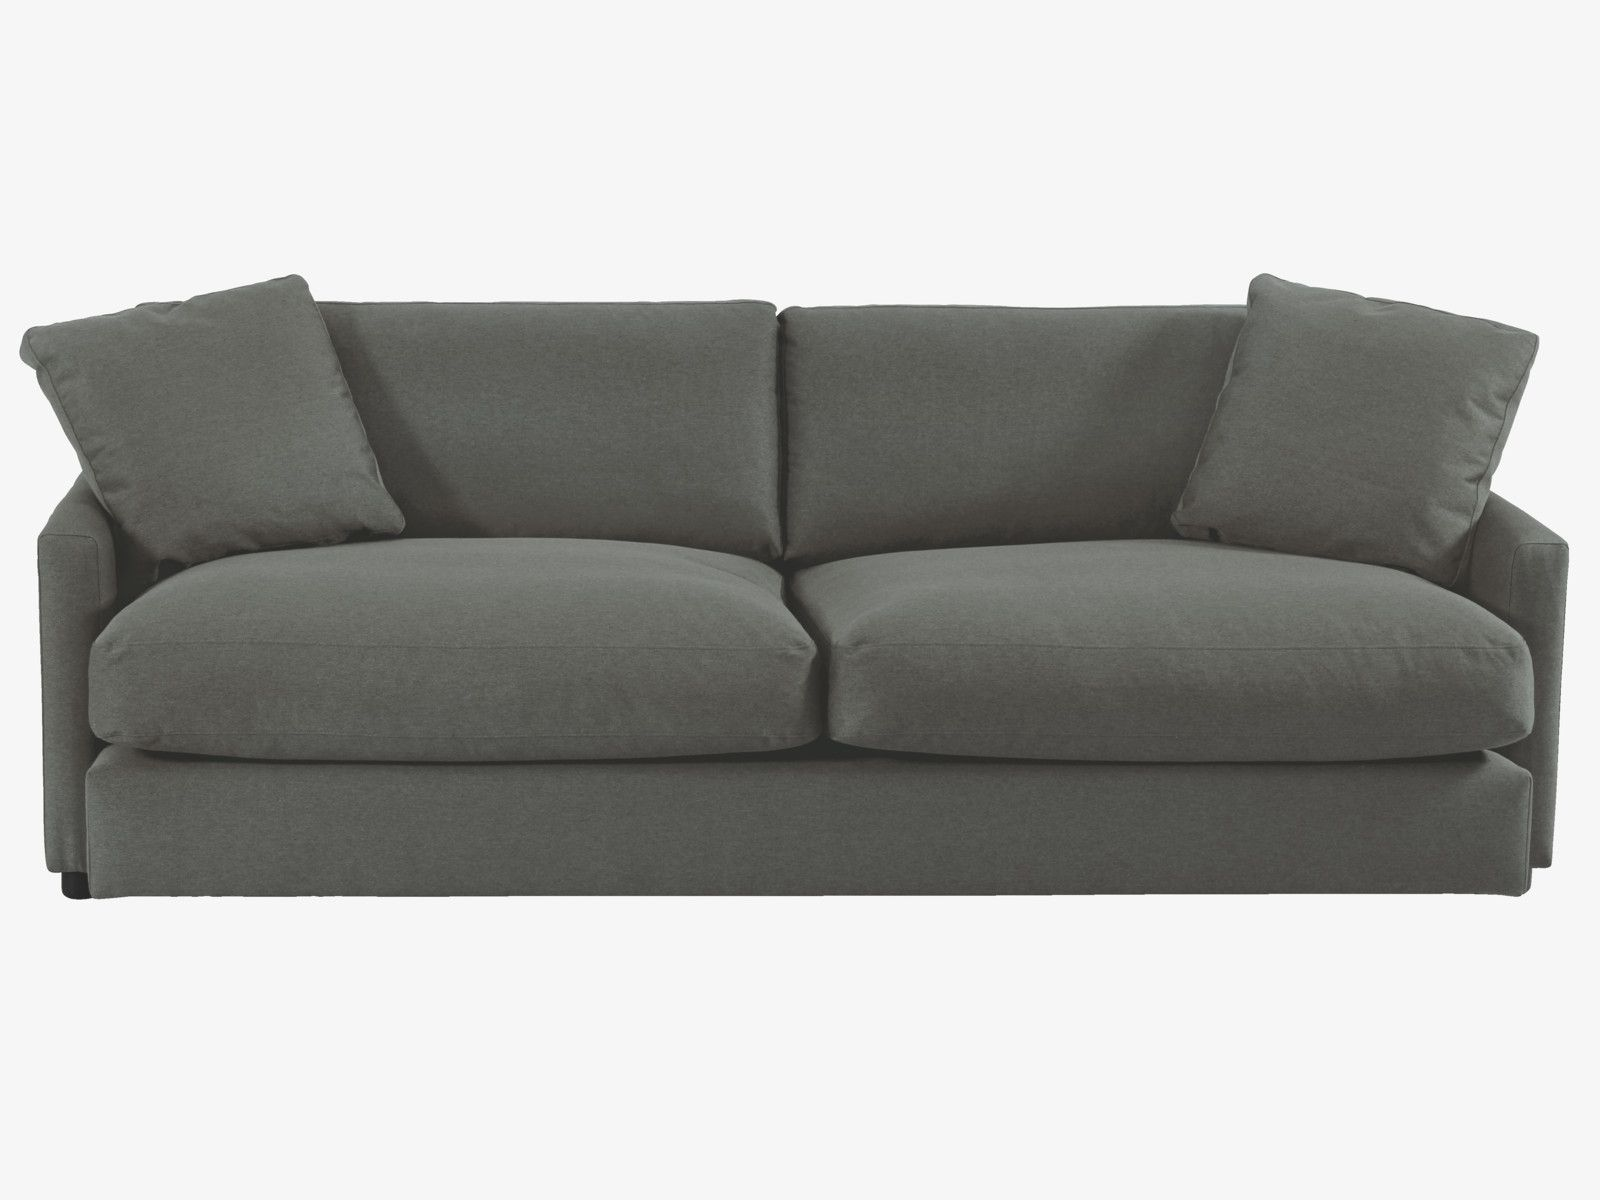 Corduroy 3 Seater Sofa Colin Charcoal Fabric 4 Seater Sofa Home 3 Seater Sofa Sofa